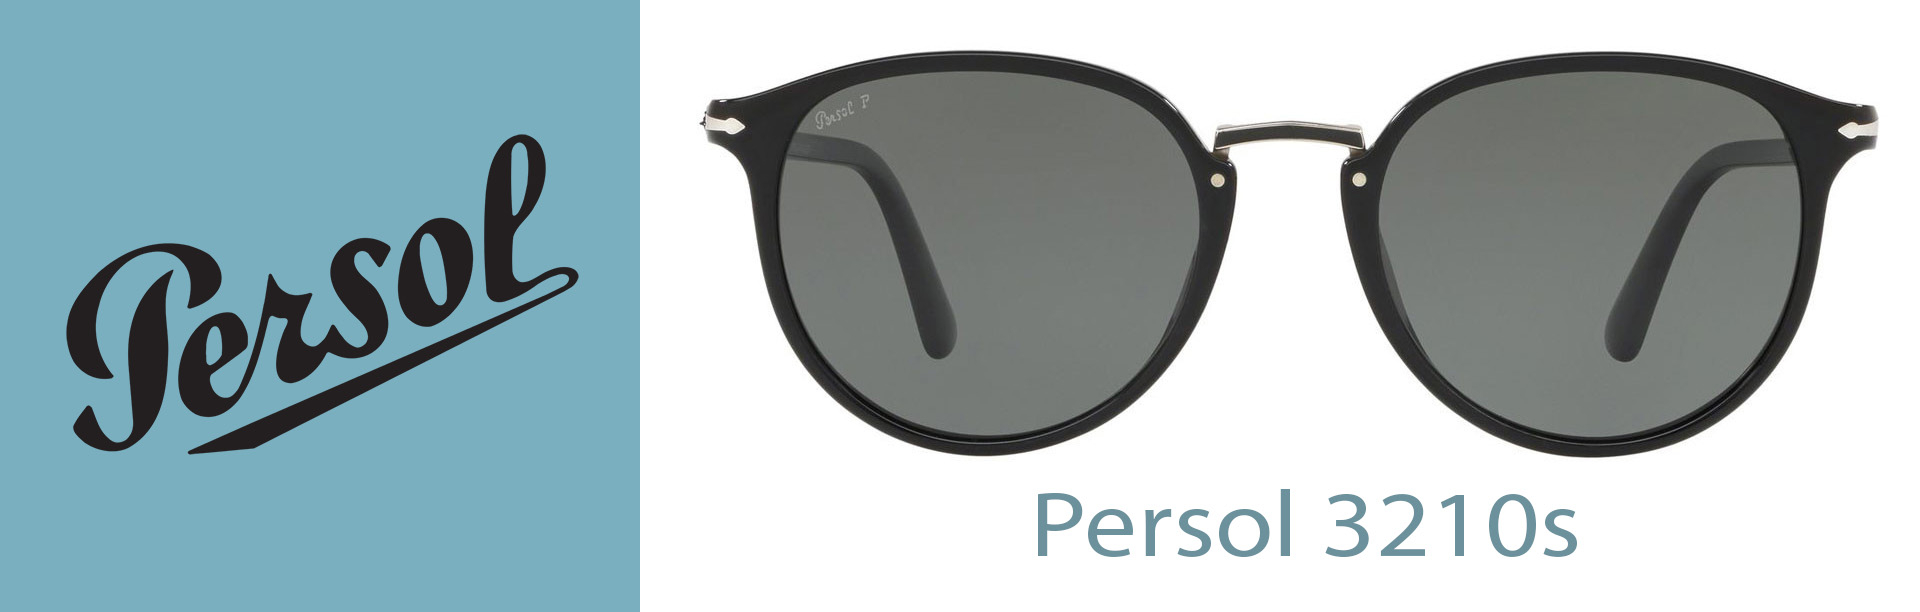 Persol 3210s Review In Focus Banner | EyeWearThese.com